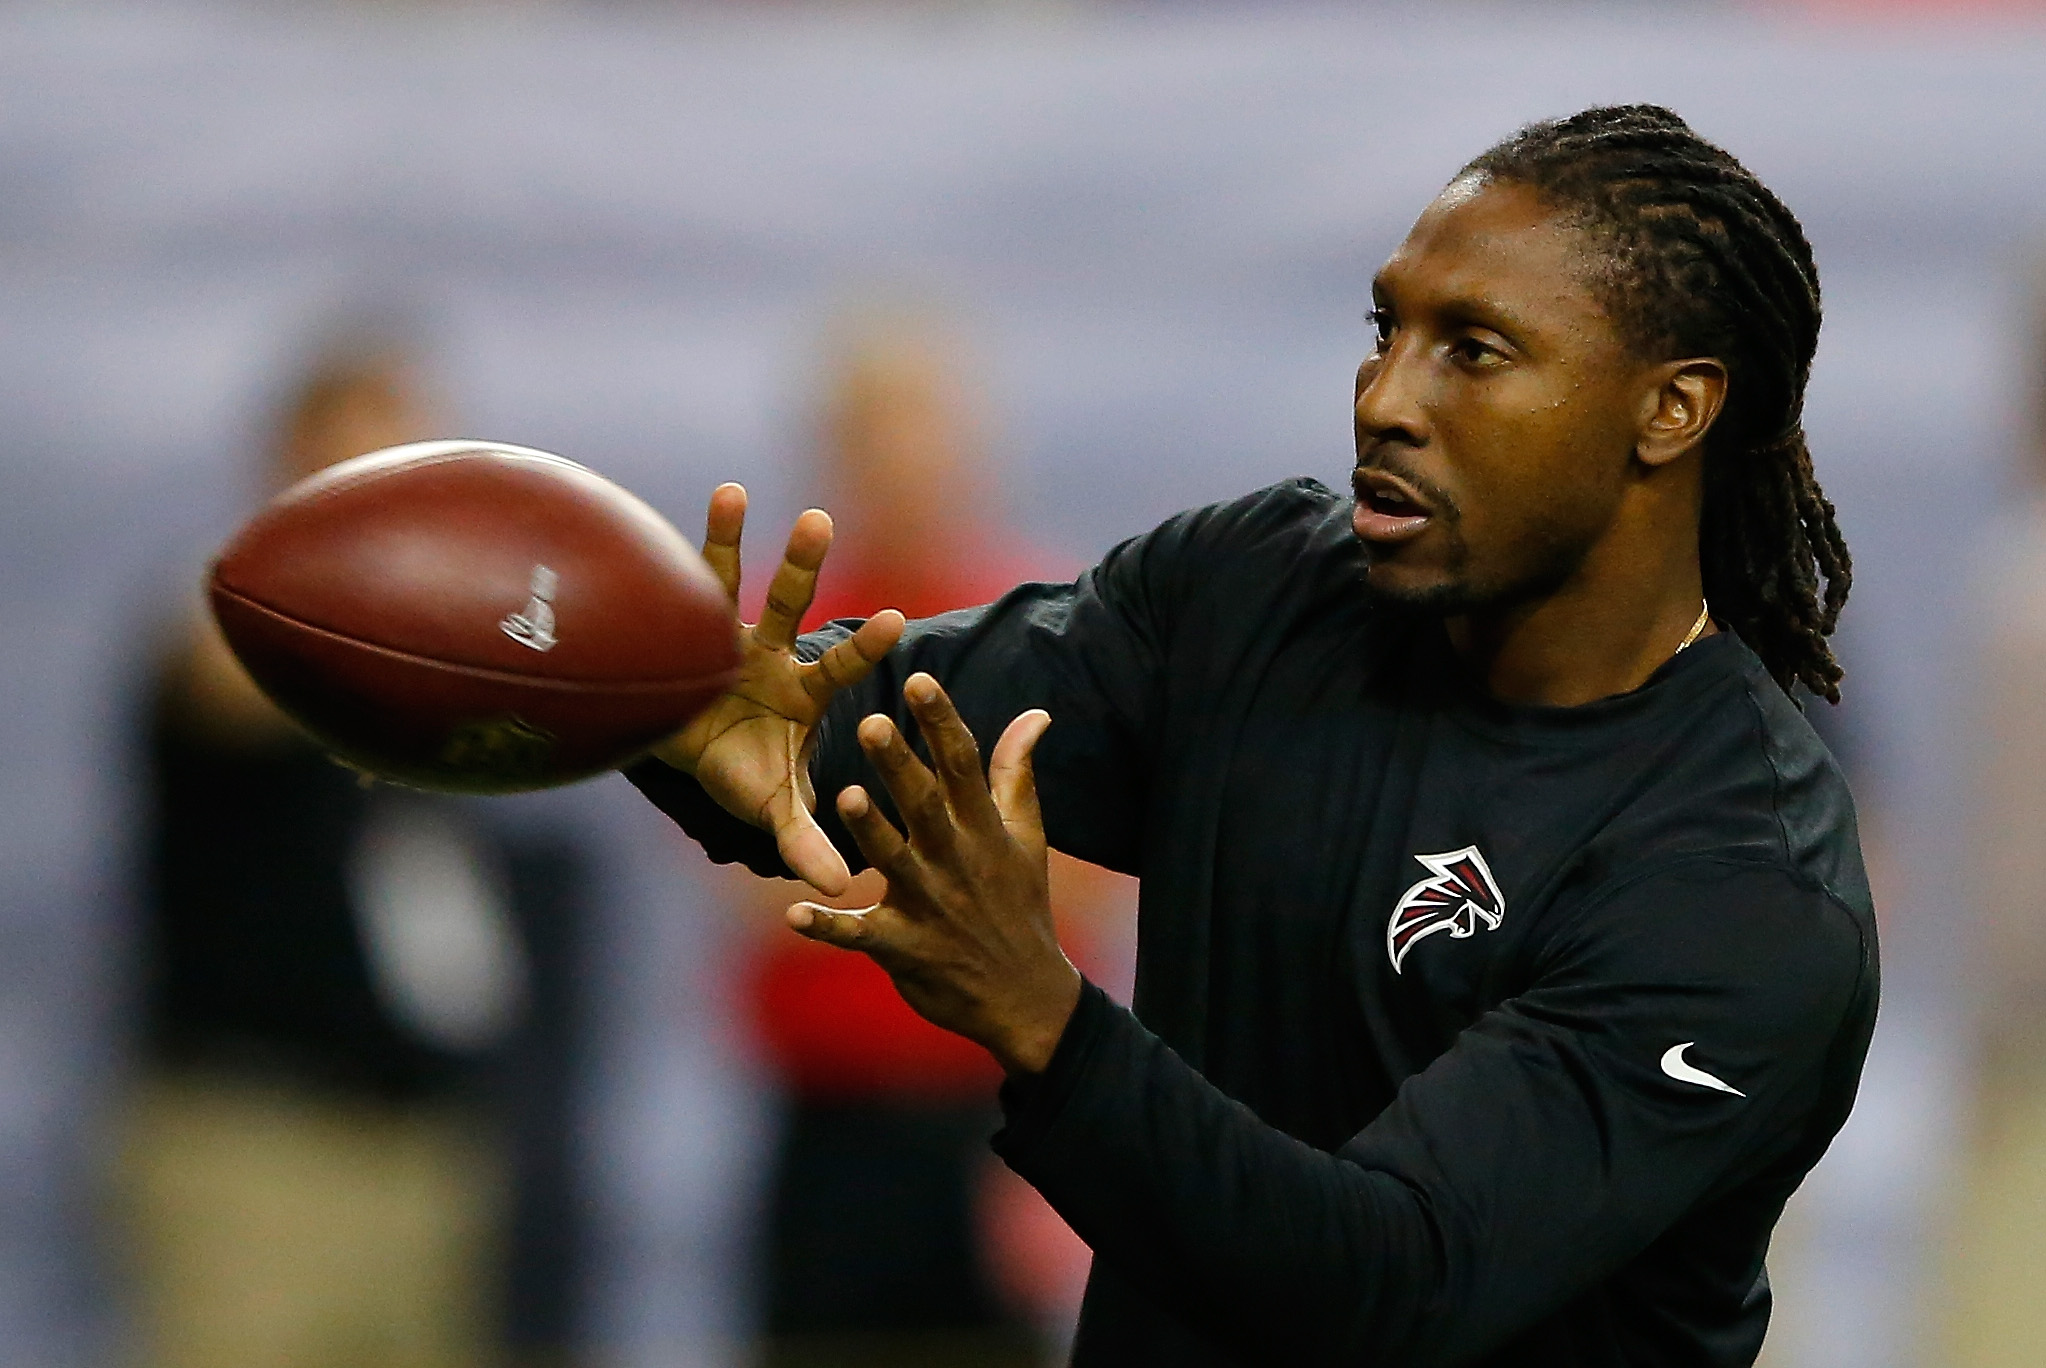 Roddy White warming up before a Falcons game